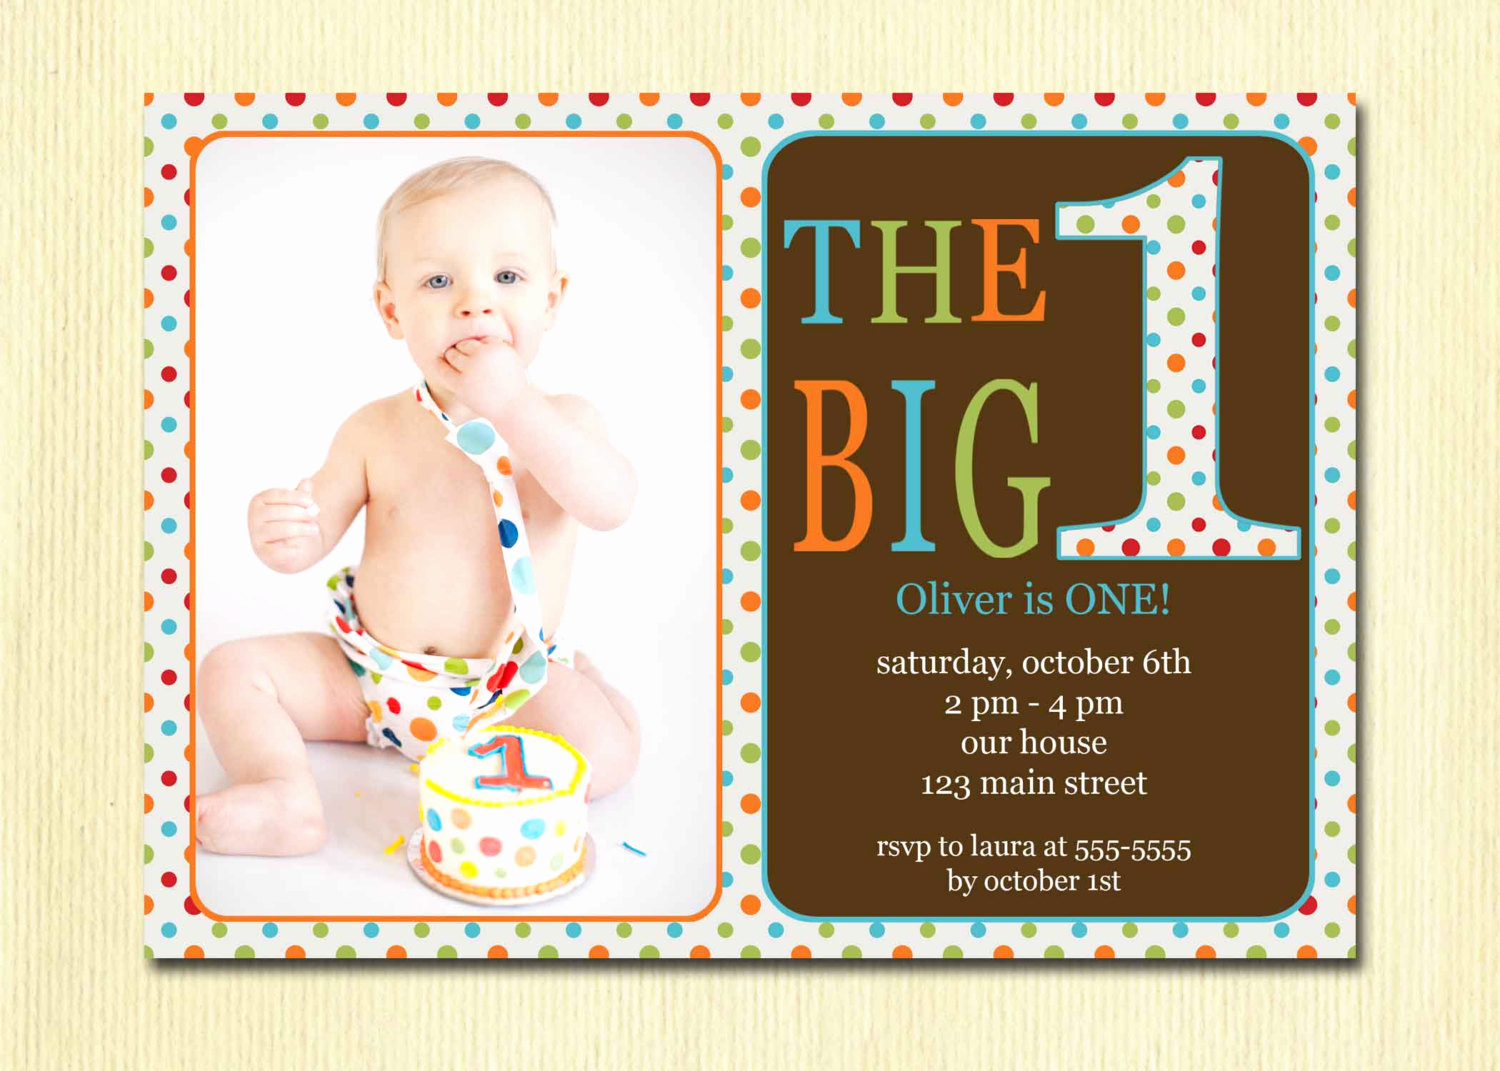 Baby Boy Birthday Invitation Unique First Birthday Baby Boy Invitation Diy by